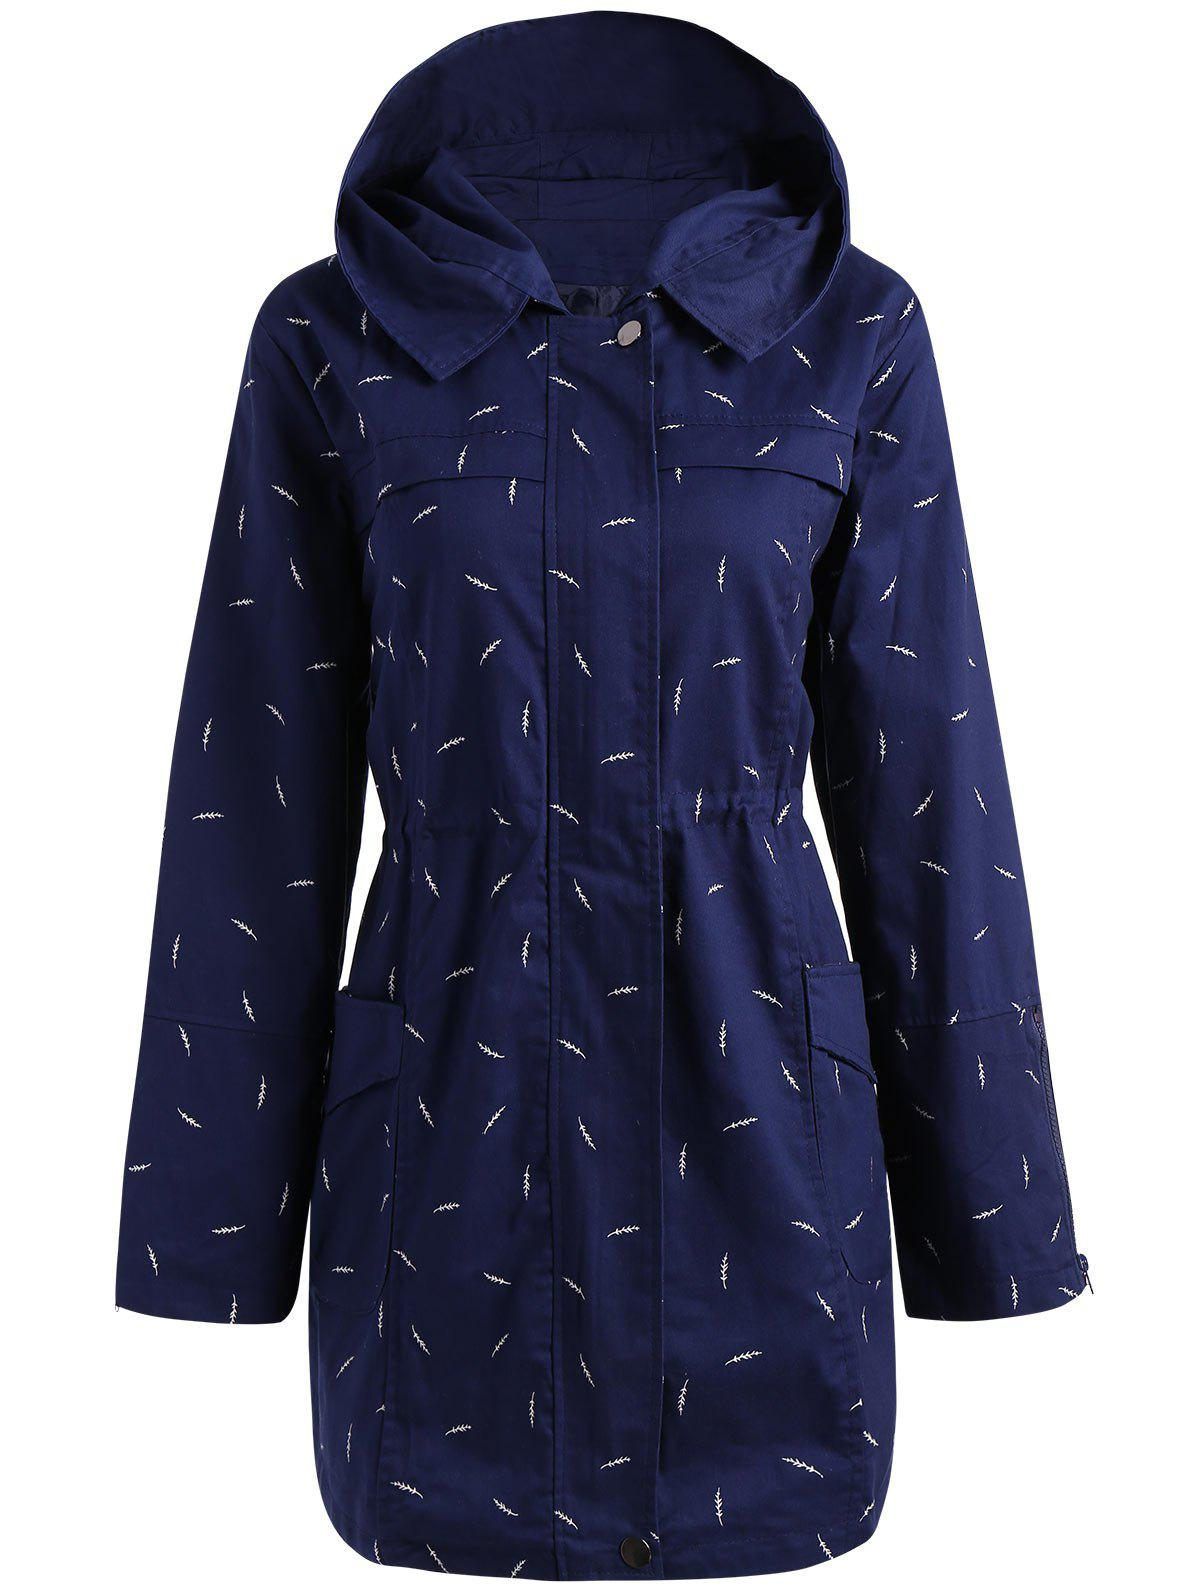 Plus Size Pocket Hooded Printed JacketWOMEN<br><br>Size: 5XL; Color: BLUE; Clothes Type: Jackets; Material: Cotton,Polyester; Type: Slim; Shirt Length: Long; Sleeve Length: Full; Collar: Hooded; Closure Type: Zipper; Pattern Type: Print; Style: Casual; Season: Fall; Weight: 0.5000kg; Package Contents: 1 x Jacket;